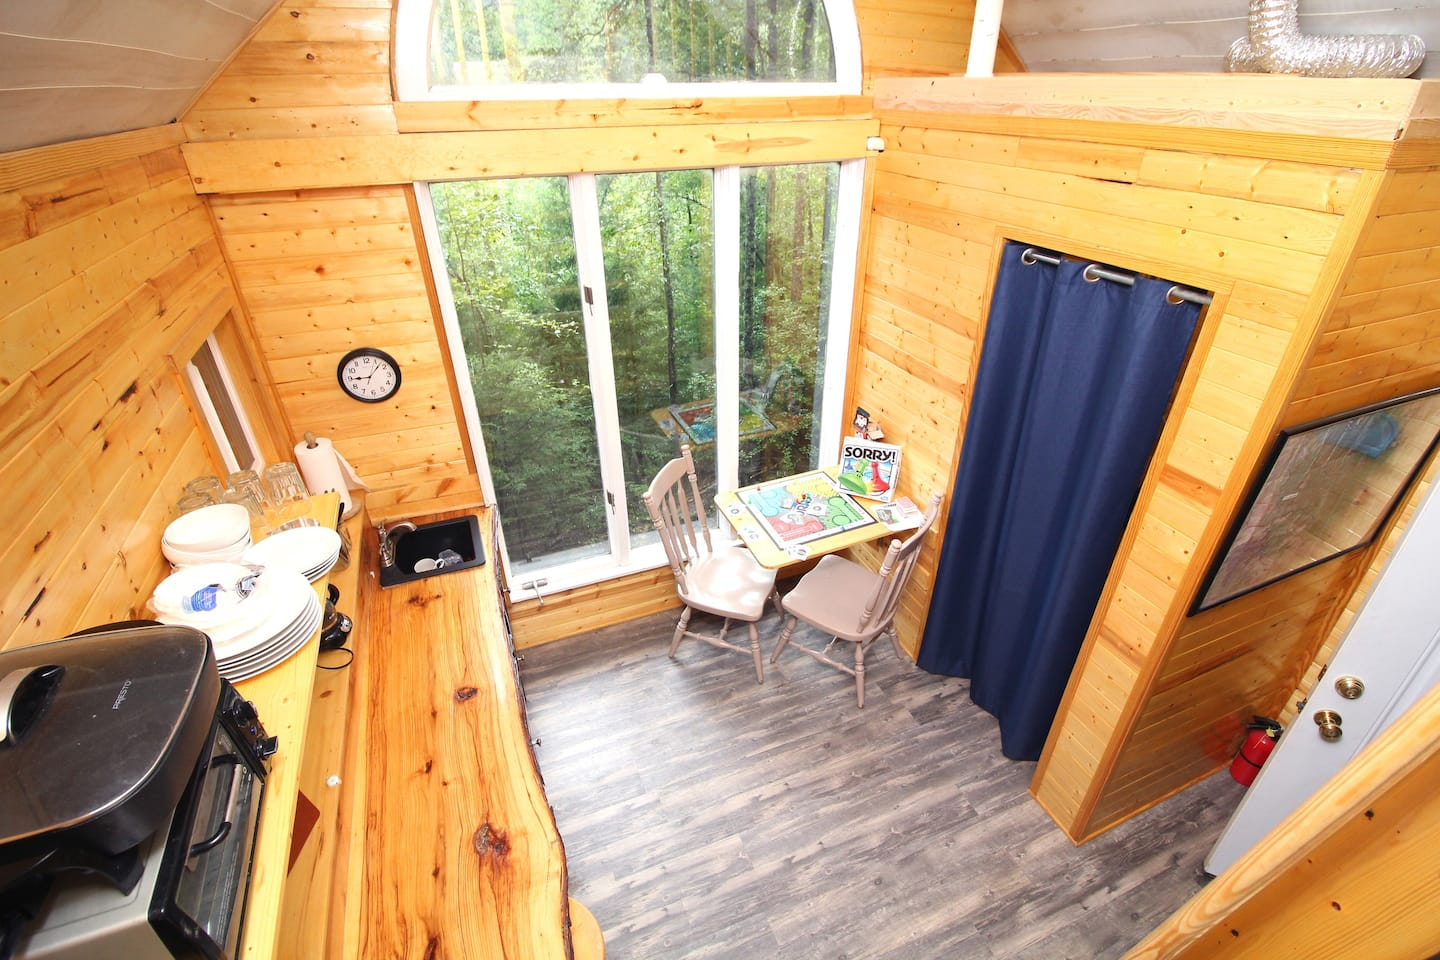 Eagles Nest Treehouse Kentucky Airbnb